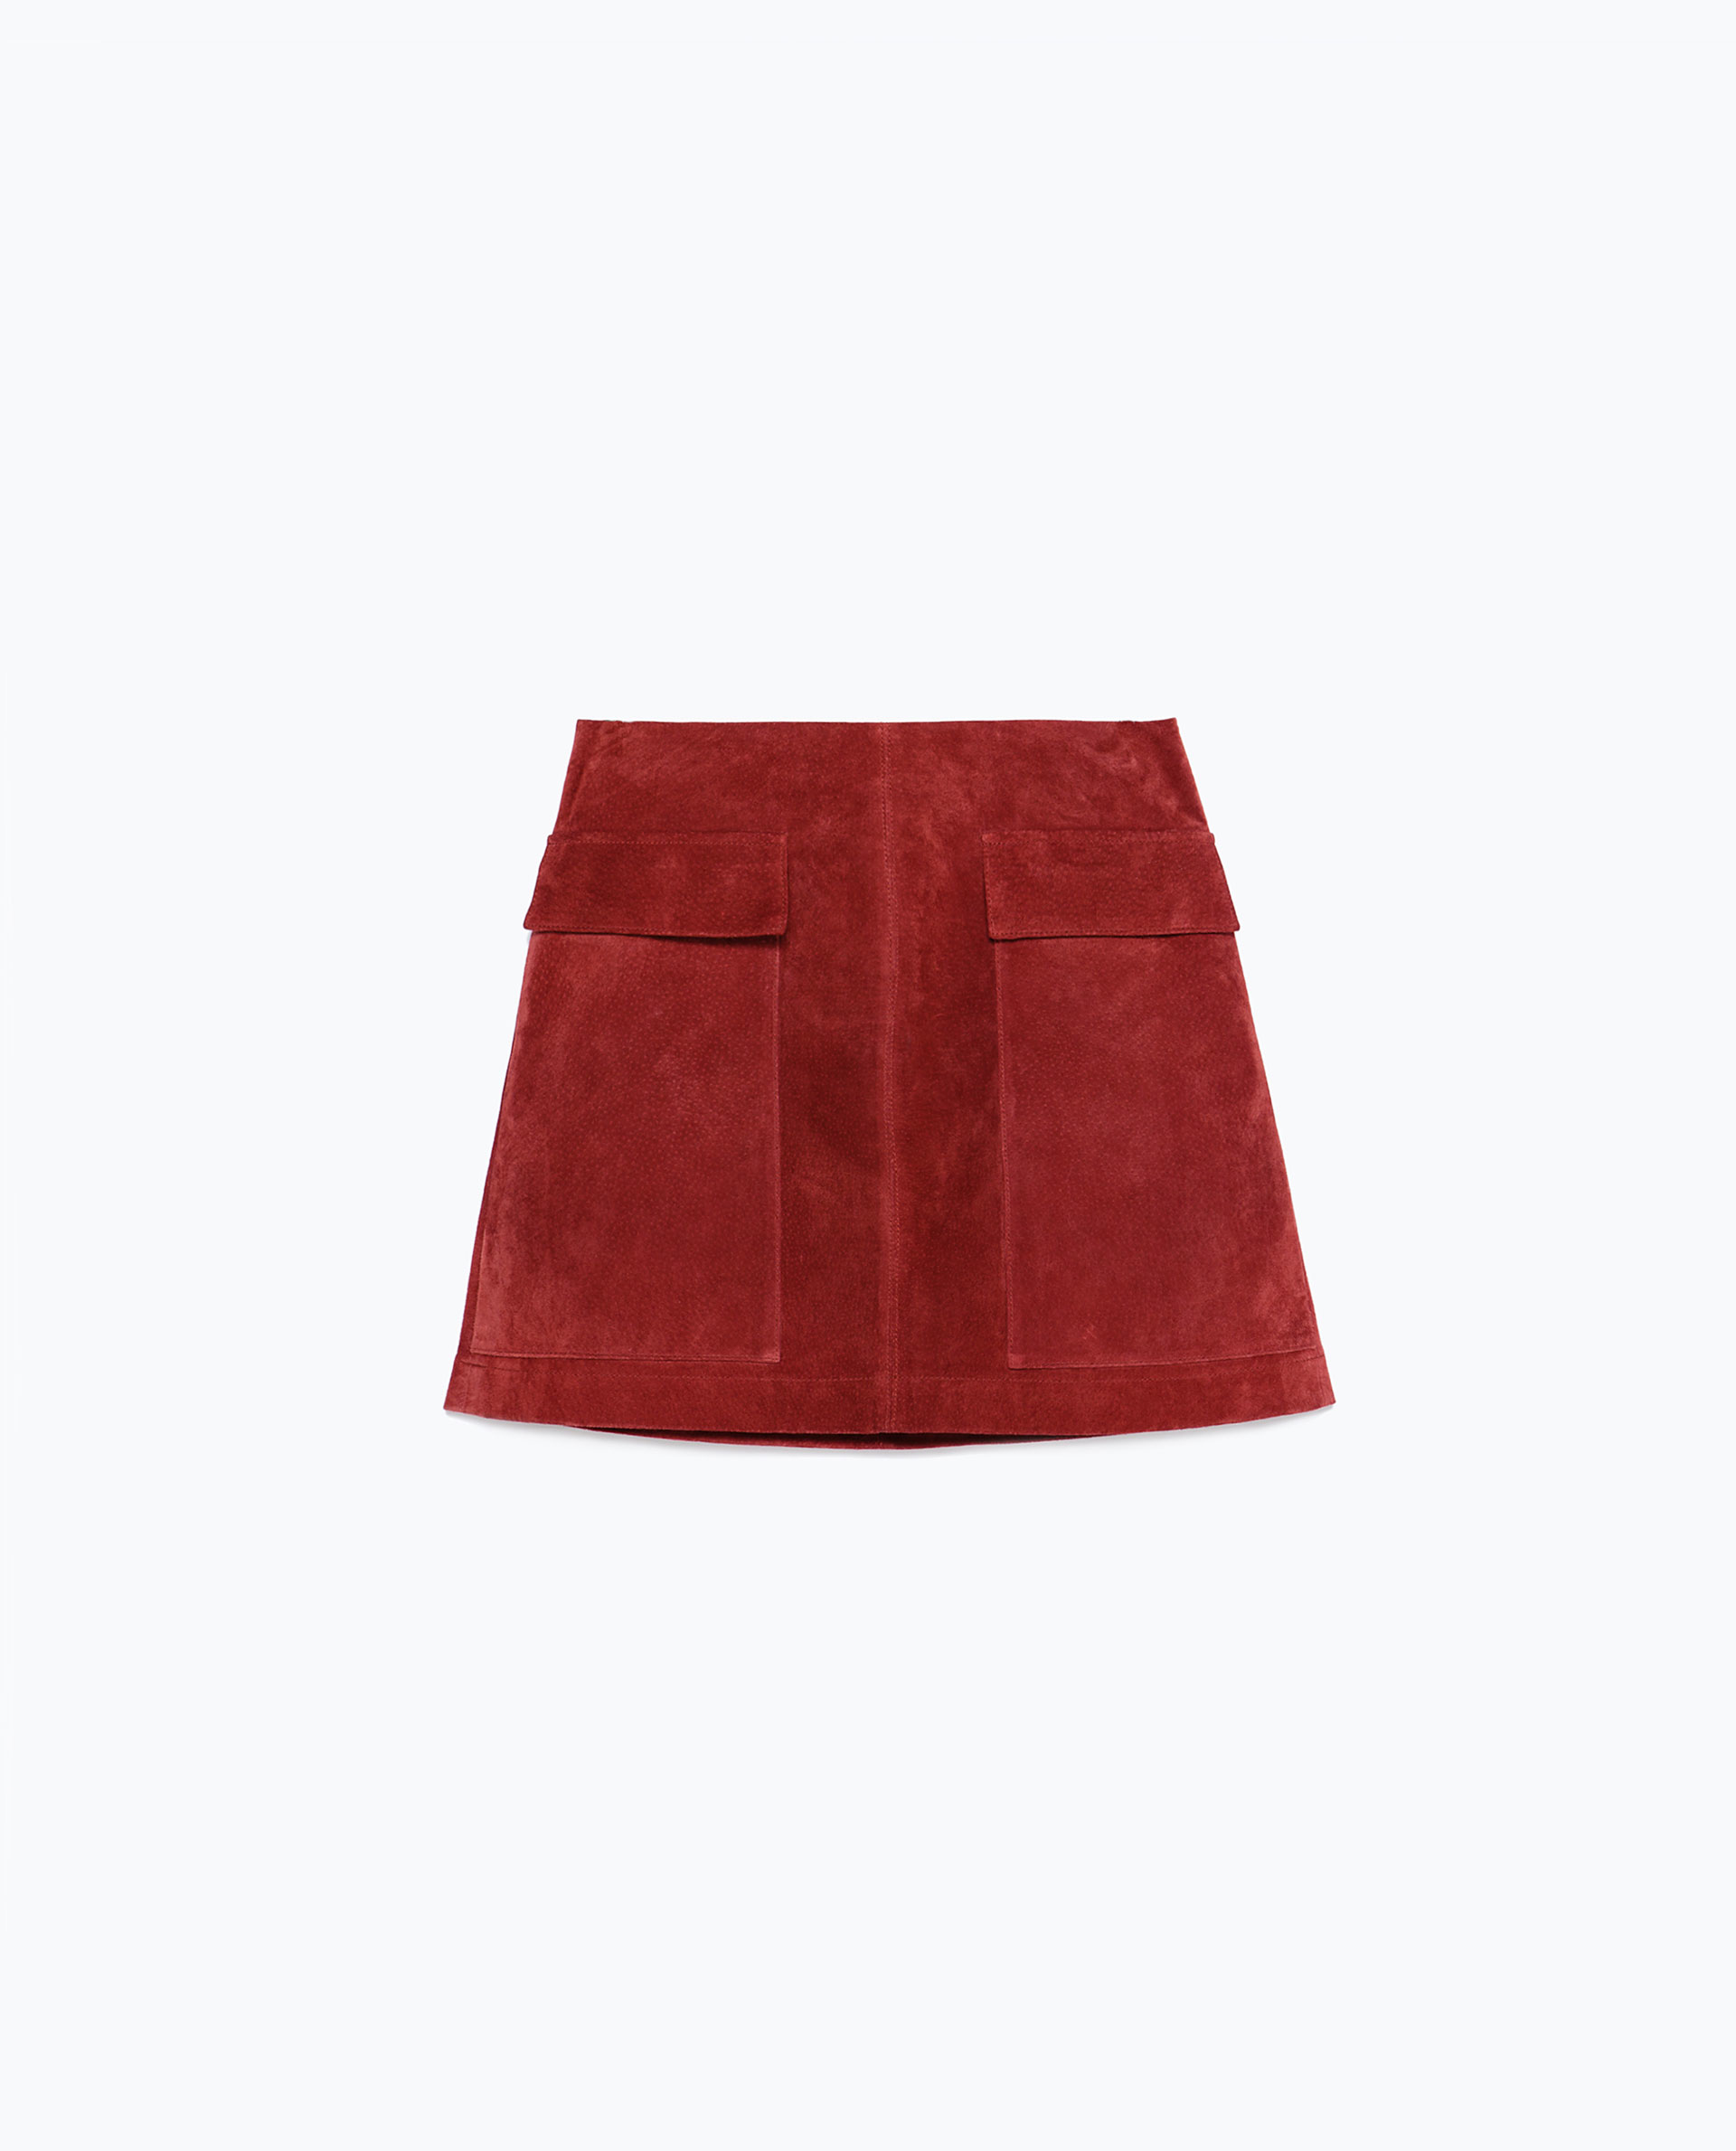 Zara Suede Skirt in Red | Lyst